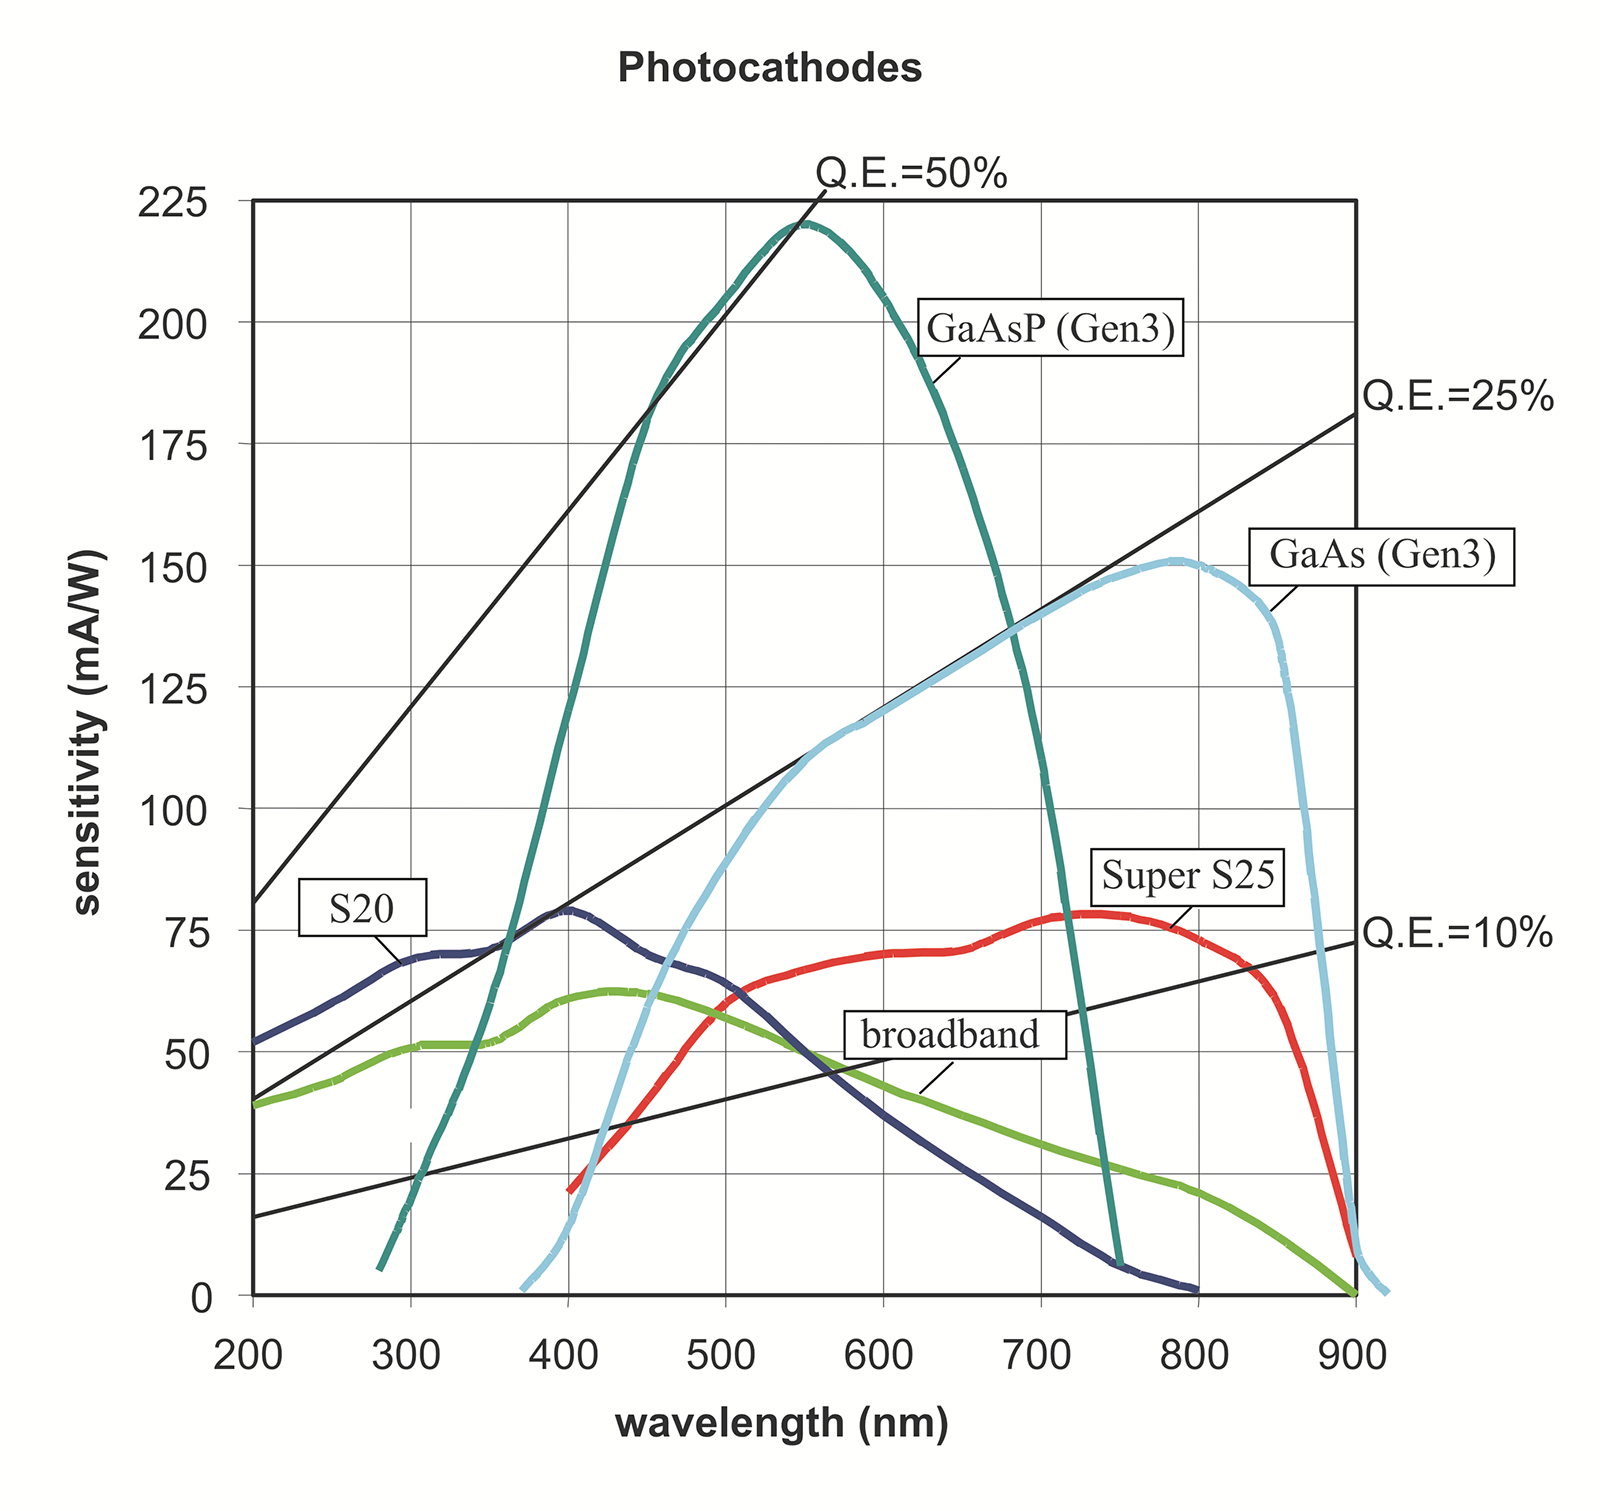 Figure 5. Sensitivity of photocathodes. GaAs and GaAsP cathodes are usually offered in Gen3 intensifiers, while S20, S25 and broadband are common in Gen2 intensifiers.